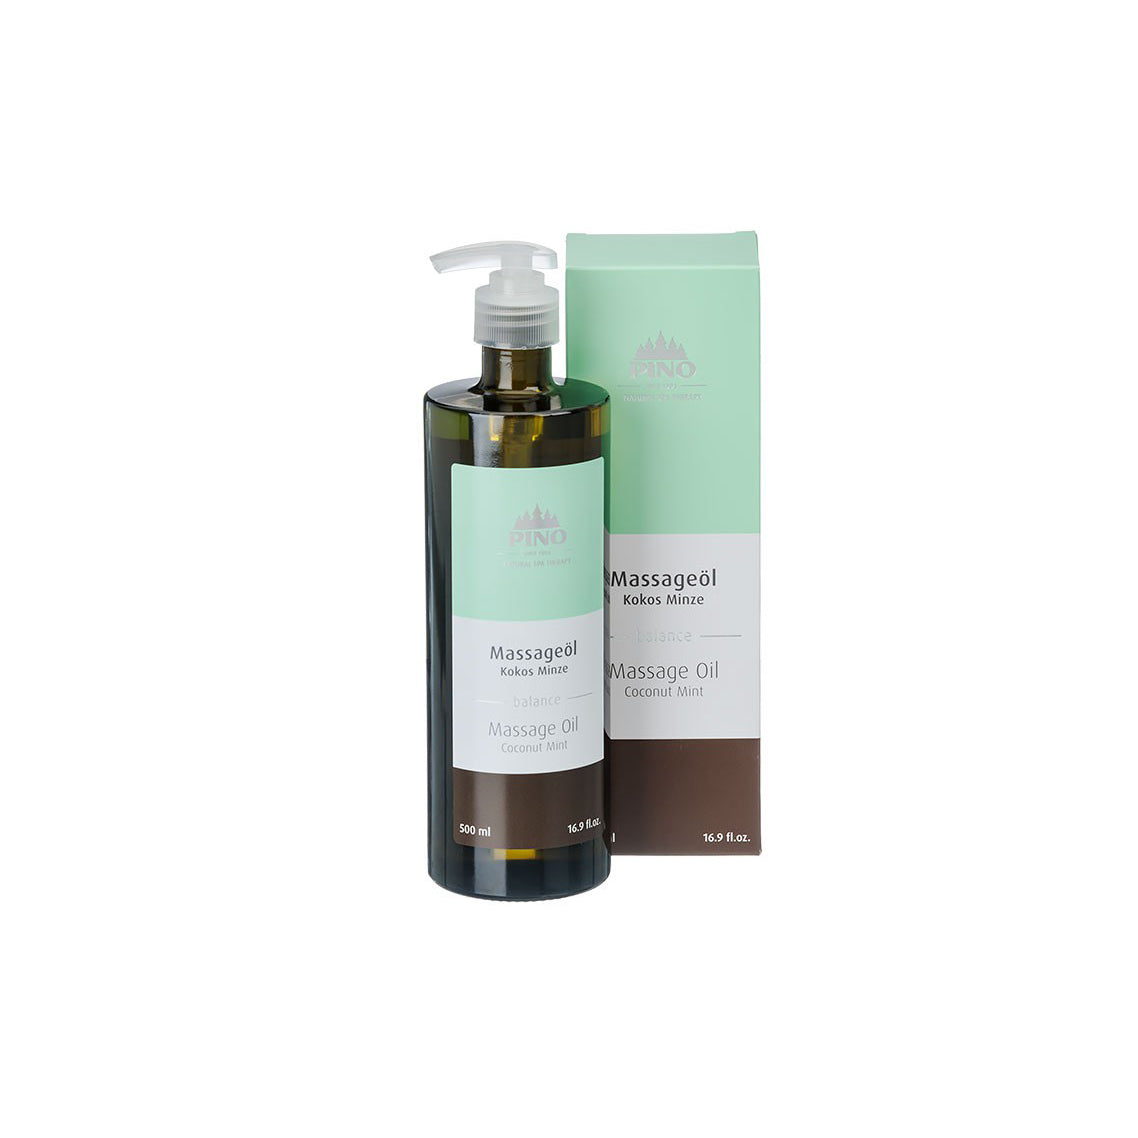 Massage Oil Coconut Mint